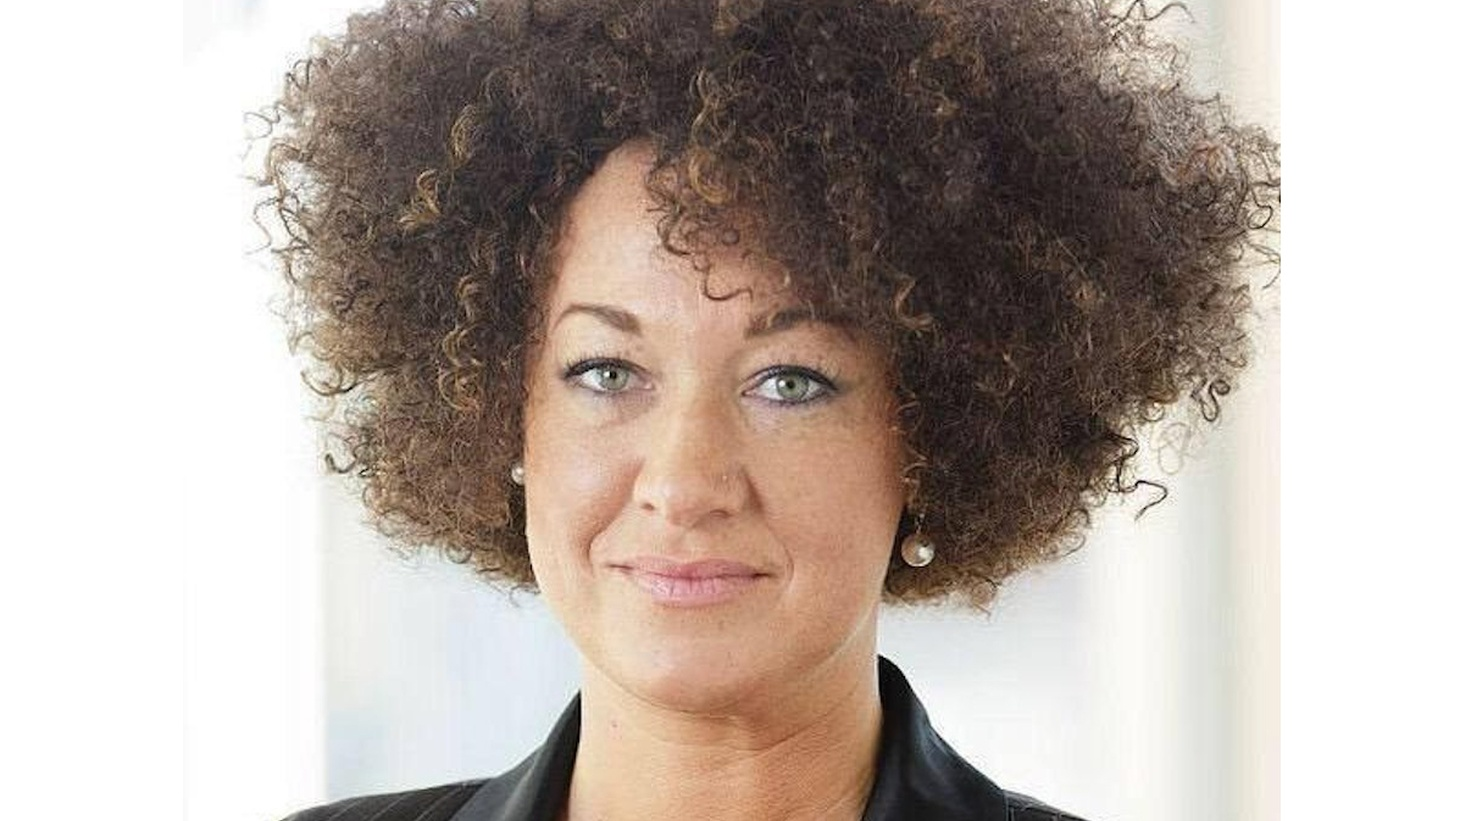 We discuss Rachel Dolezal, the former Washington state NAACP chapter head who apparently pretended to be black, and how her story reflects larger questions about racial identity in the U.S.